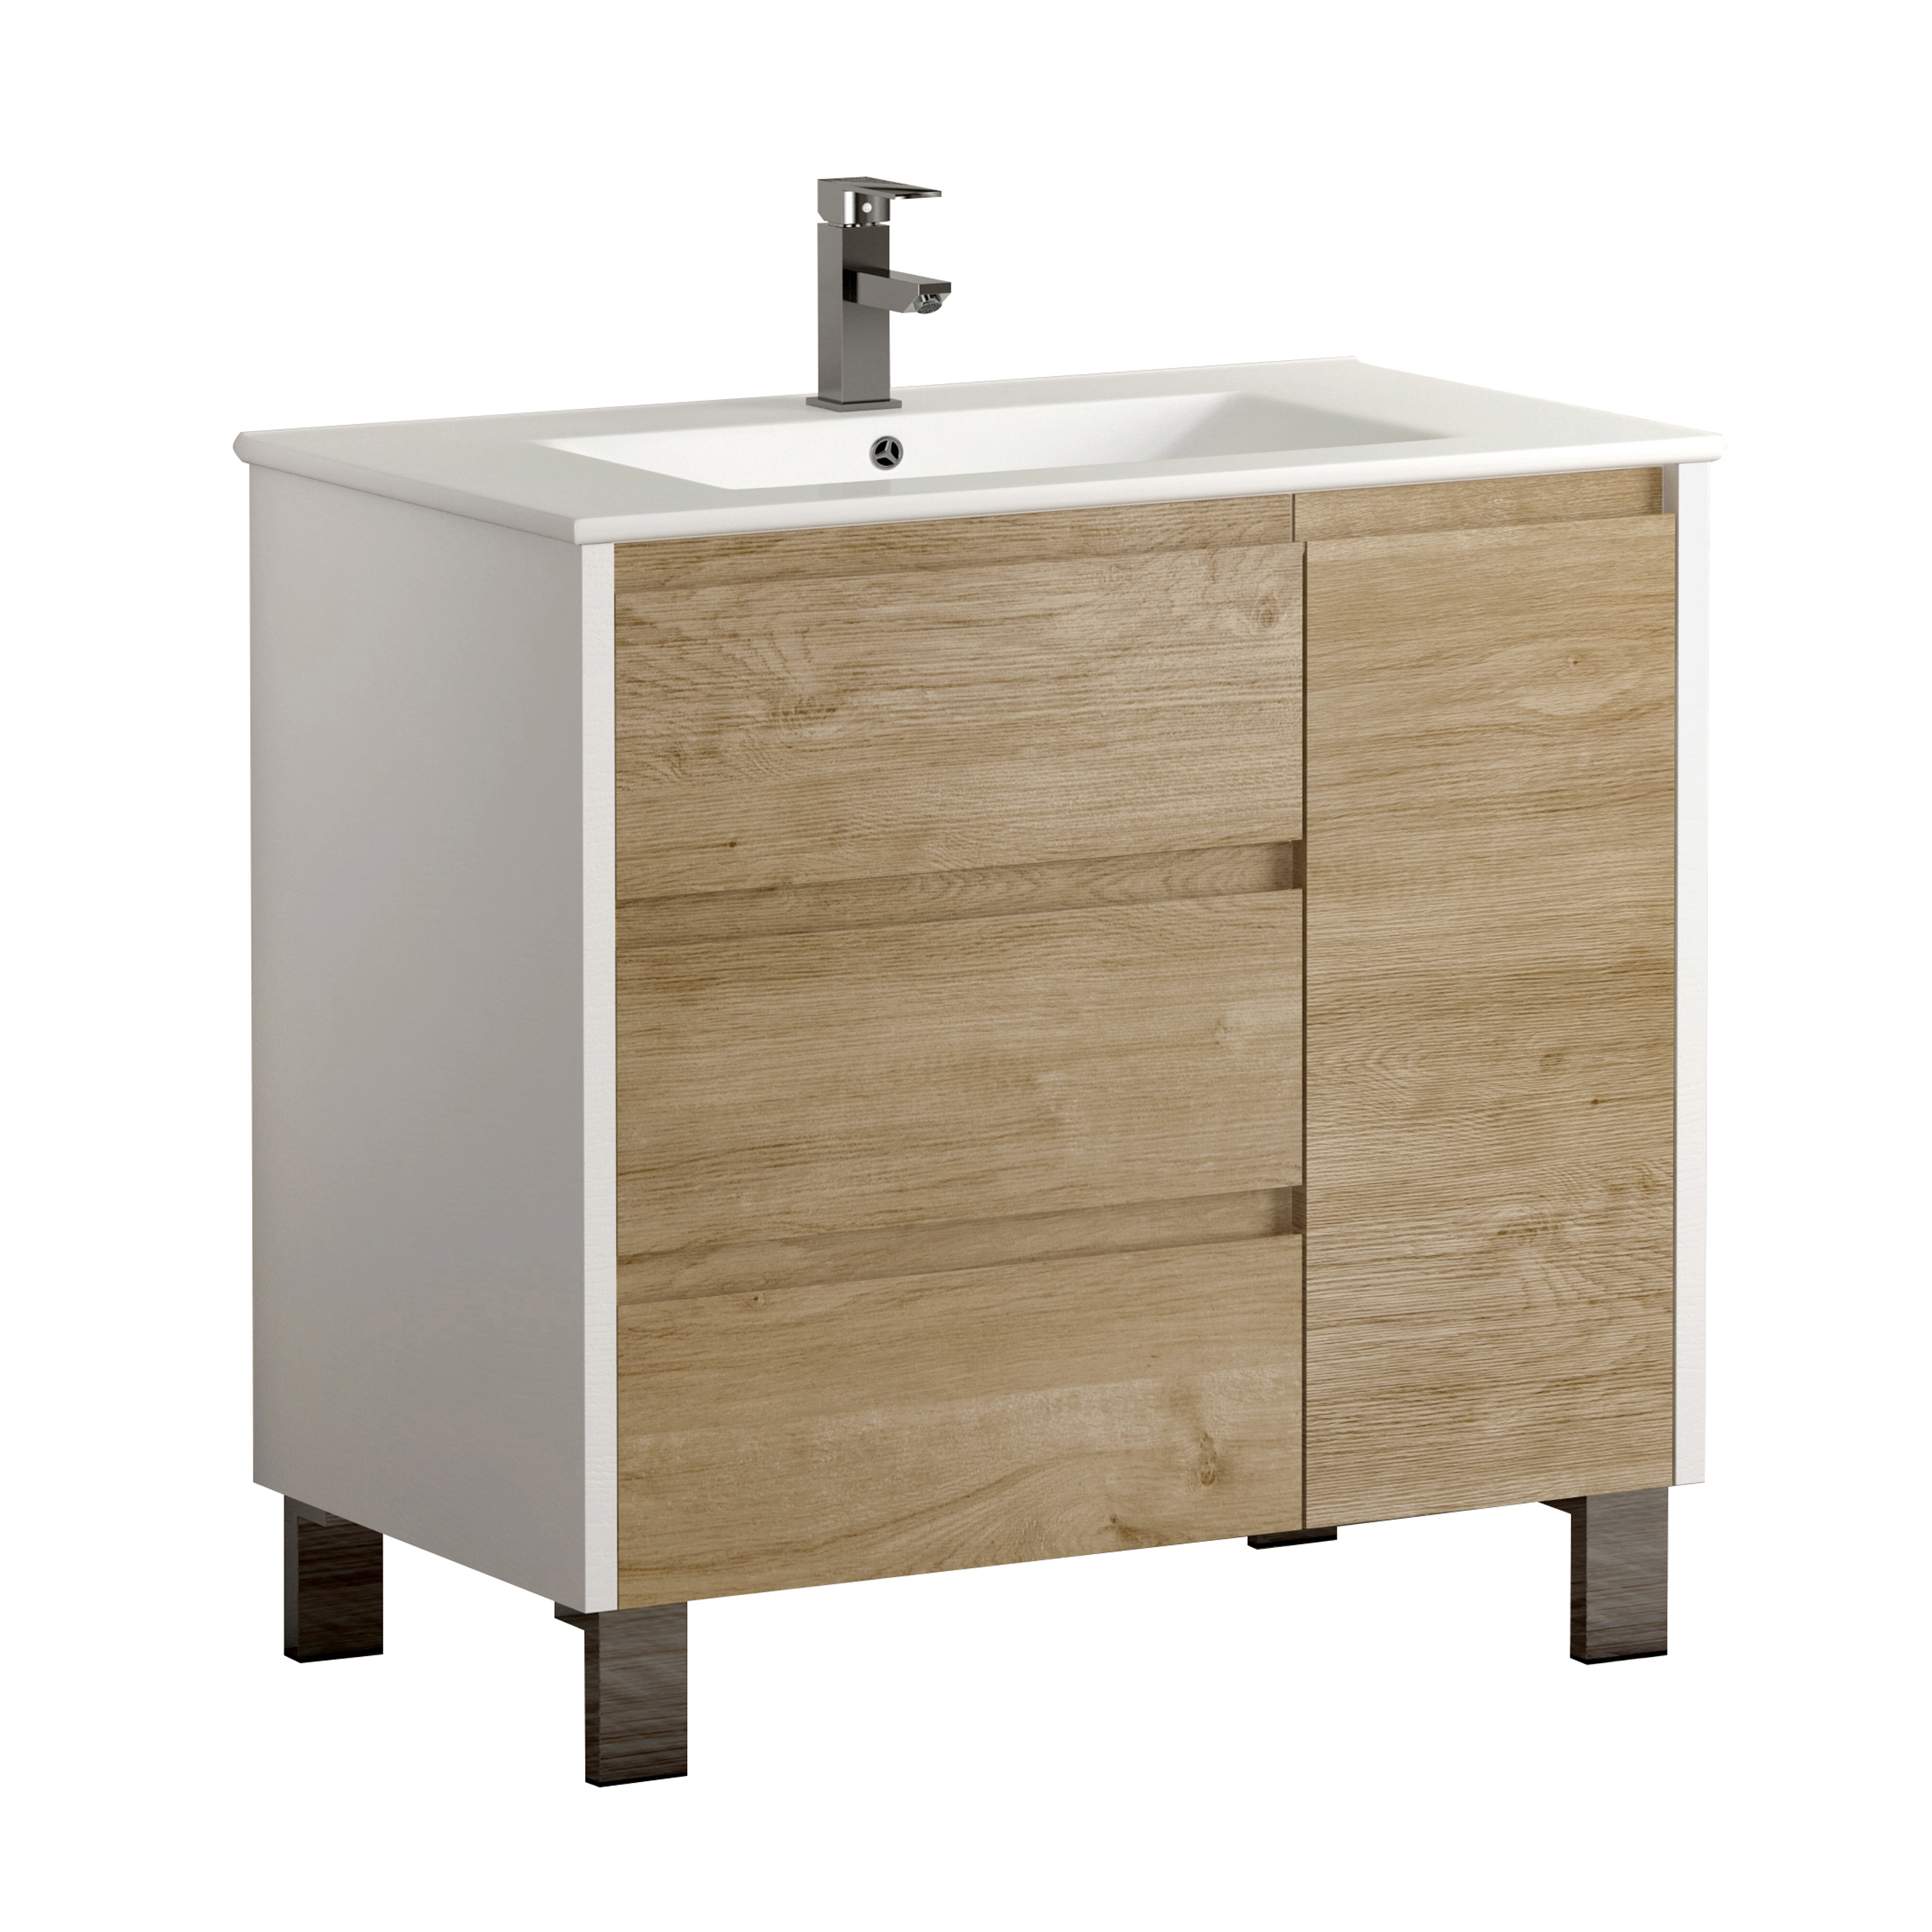 "EVVN543 32WHOAK A Main - Eviva Bella 32"" White/Oak Vanity with Porcelain sink"